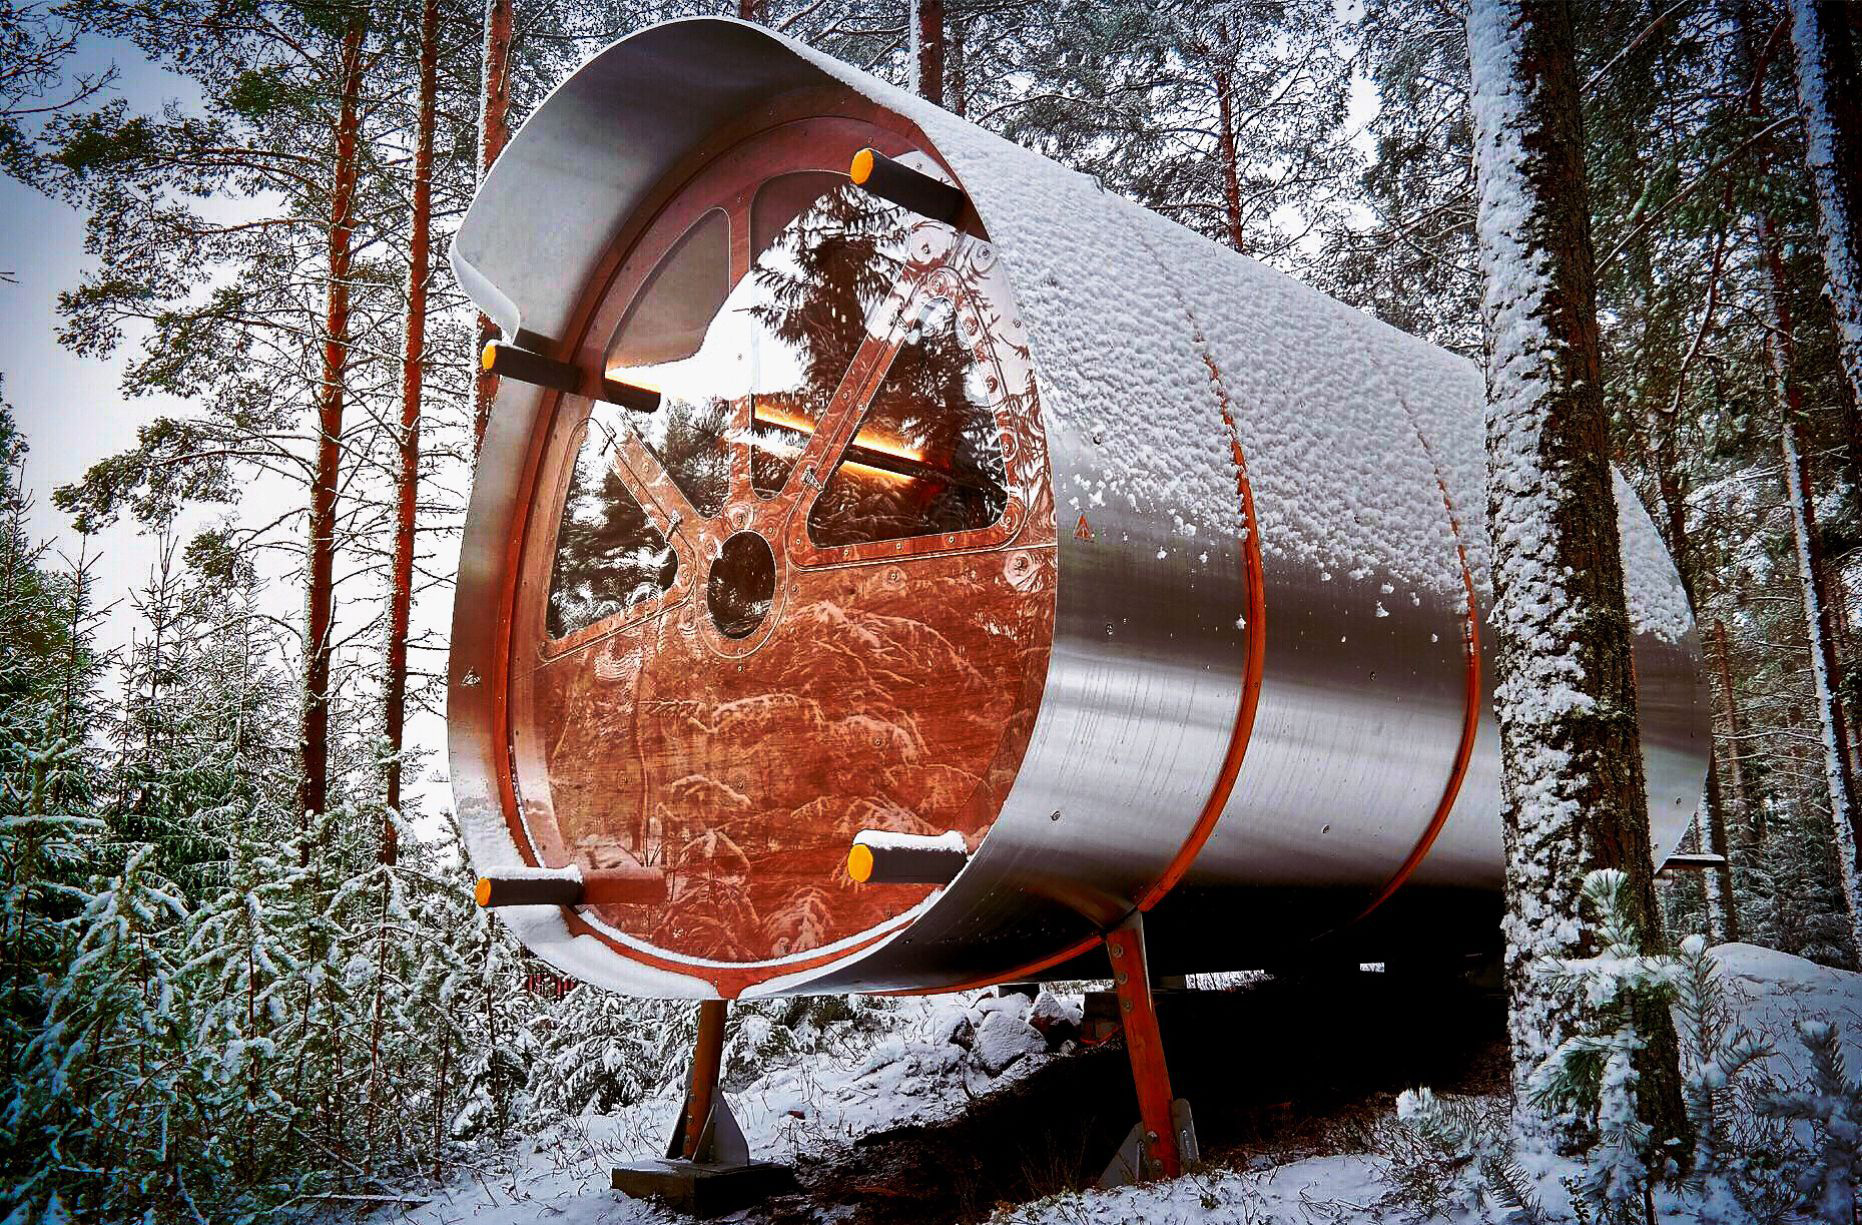 Fuselage Cabin installed in Sweden close to the Artic Circle |Glamping| Resorts | STIRworld